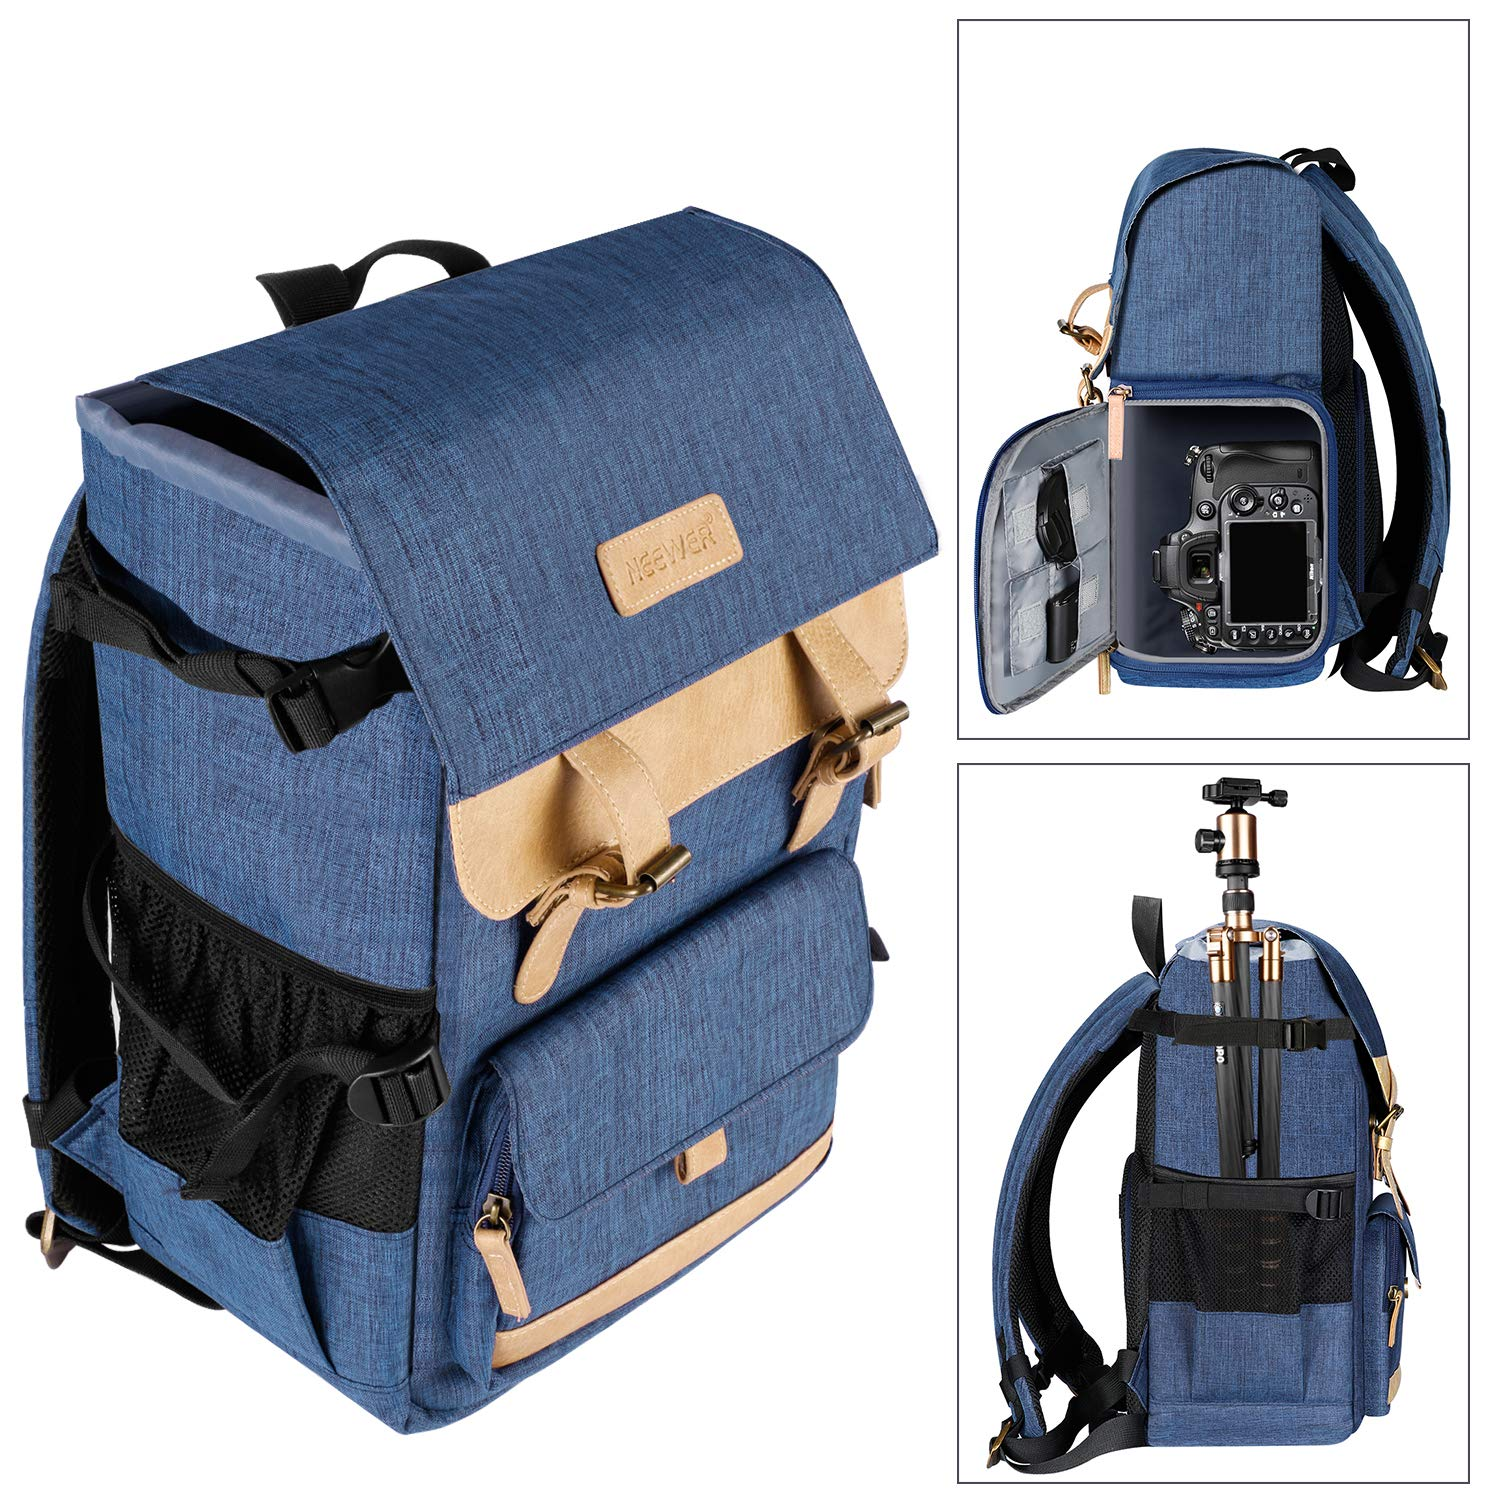 Neewer Multi-Functional Leisure Camera Backpack 10.8x8.3x16 inches/27.5x21x41 centimeters Polyester Waterproof Photography Equipment Travel Case Bag for Tripod, Canon Nikon Sony DSLR Cameras 10092984